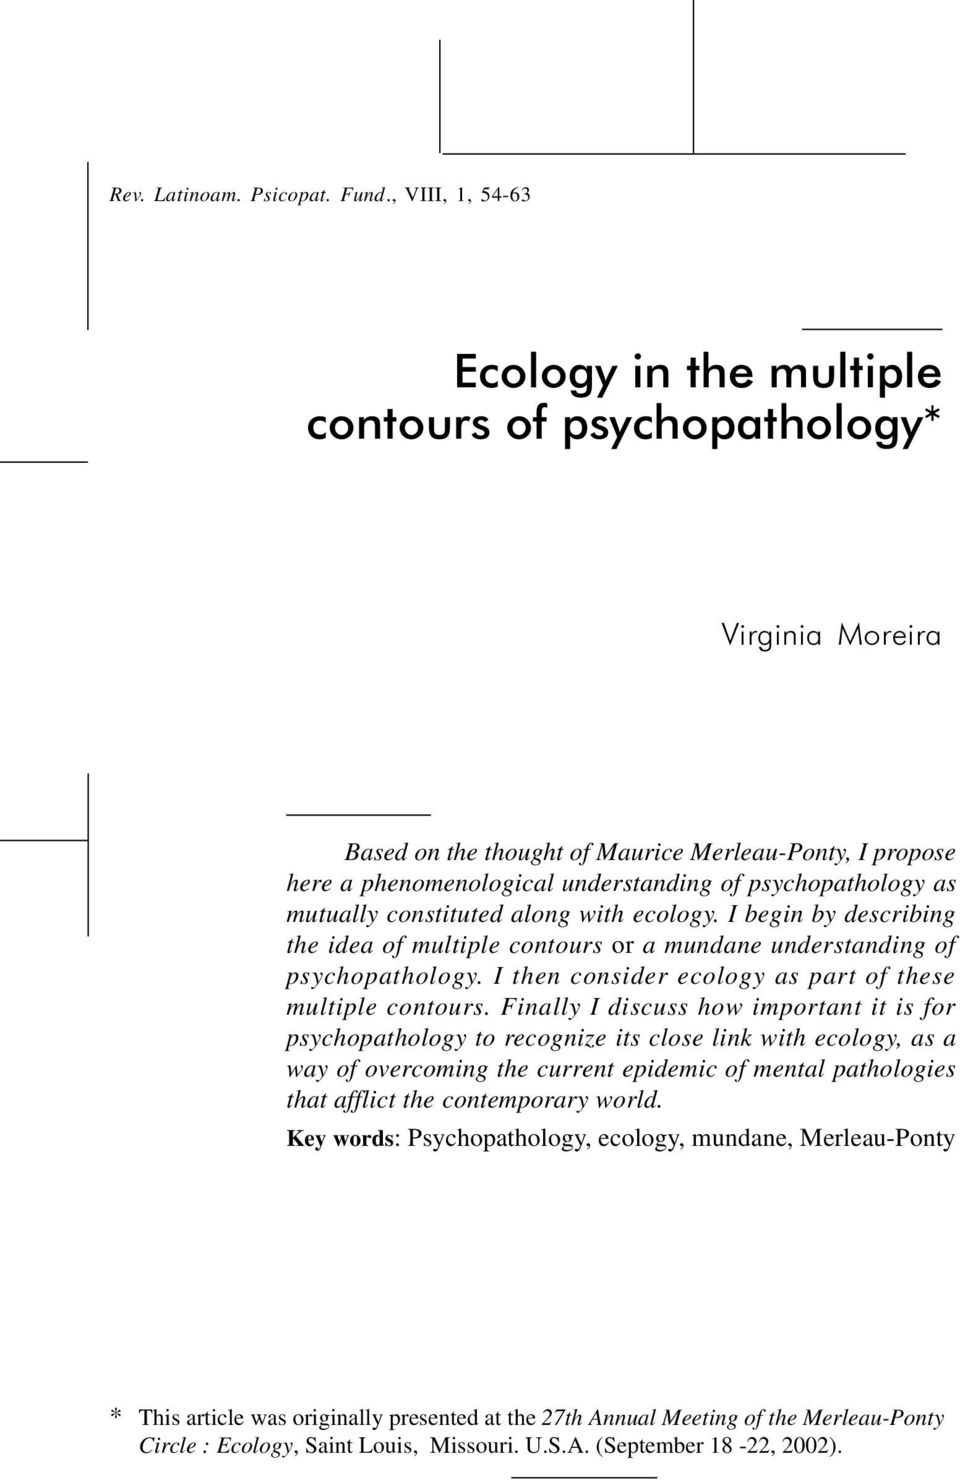 psychopathology as mutually constituted along with ecology. I begin by describing the idea of multiple contours or a mundane understanding of psychopathology.